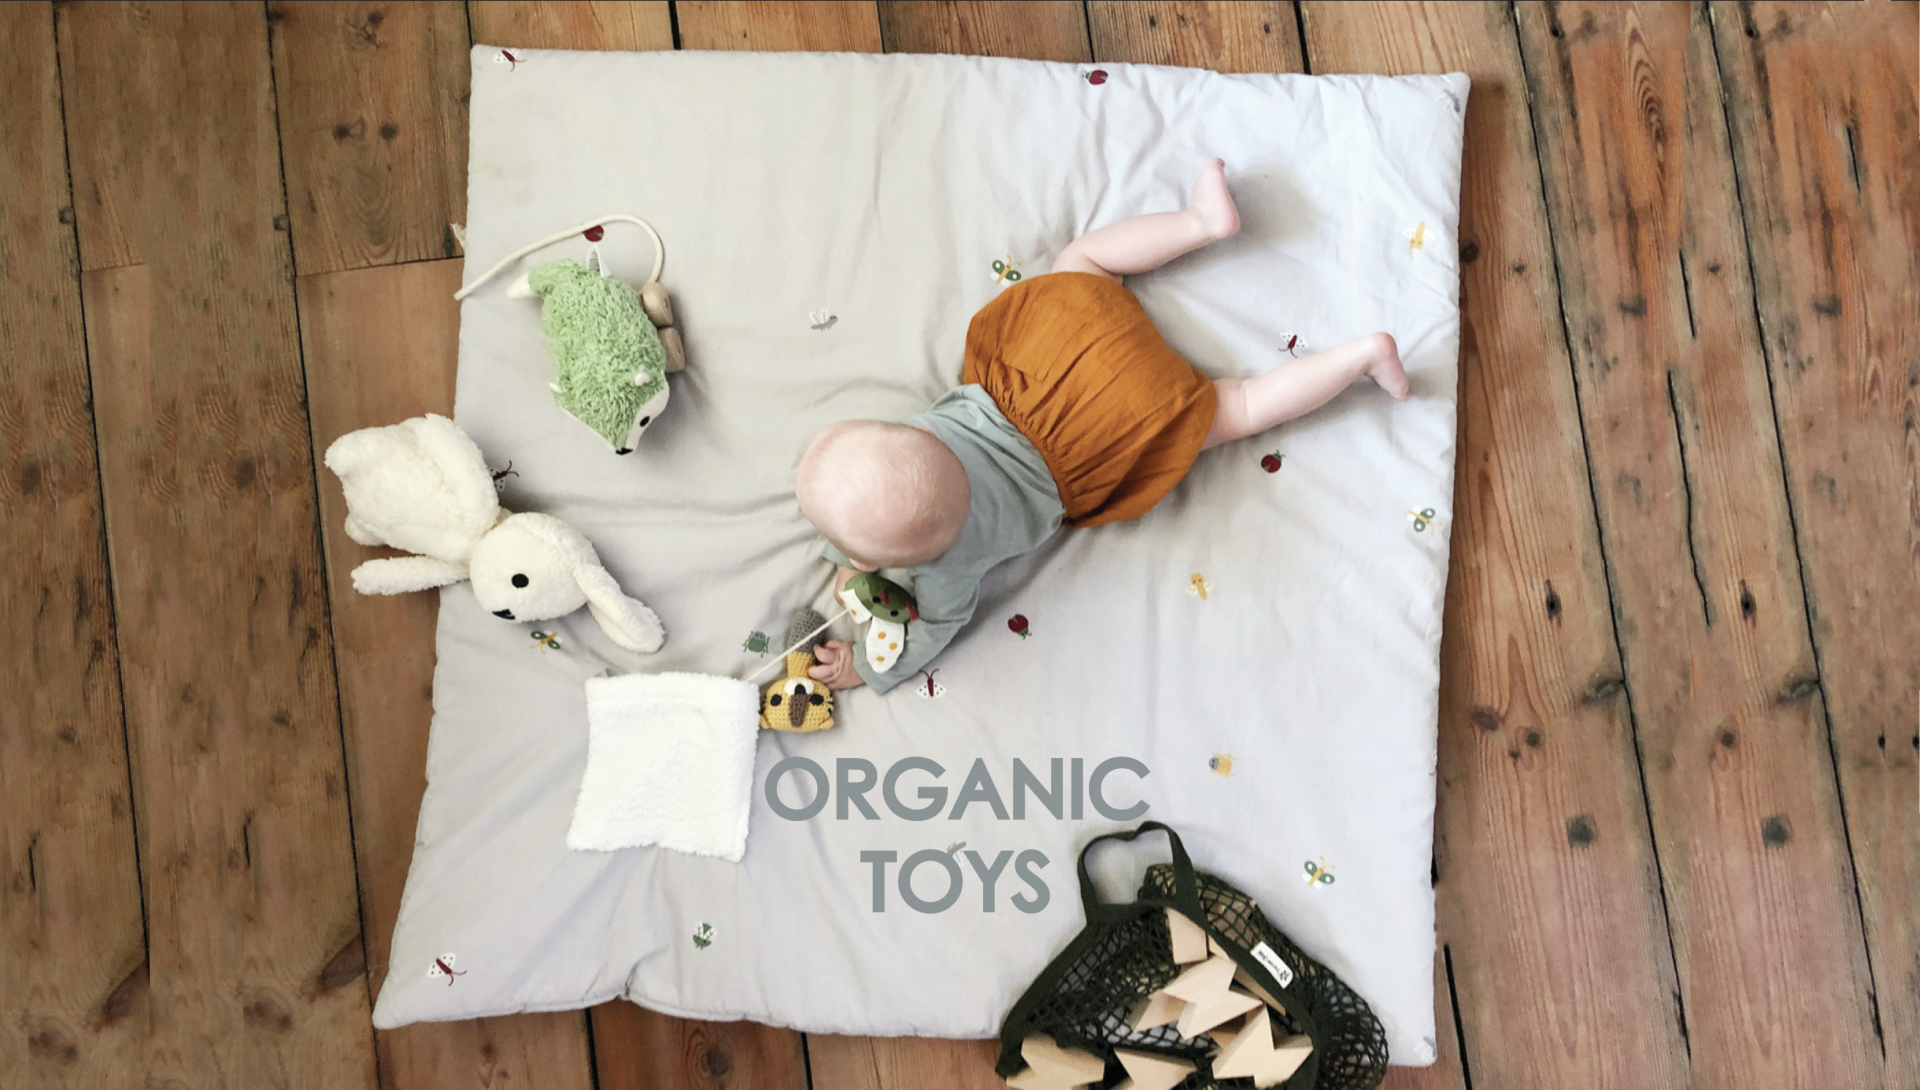 1-ORGANIC-TOYS-with-baby